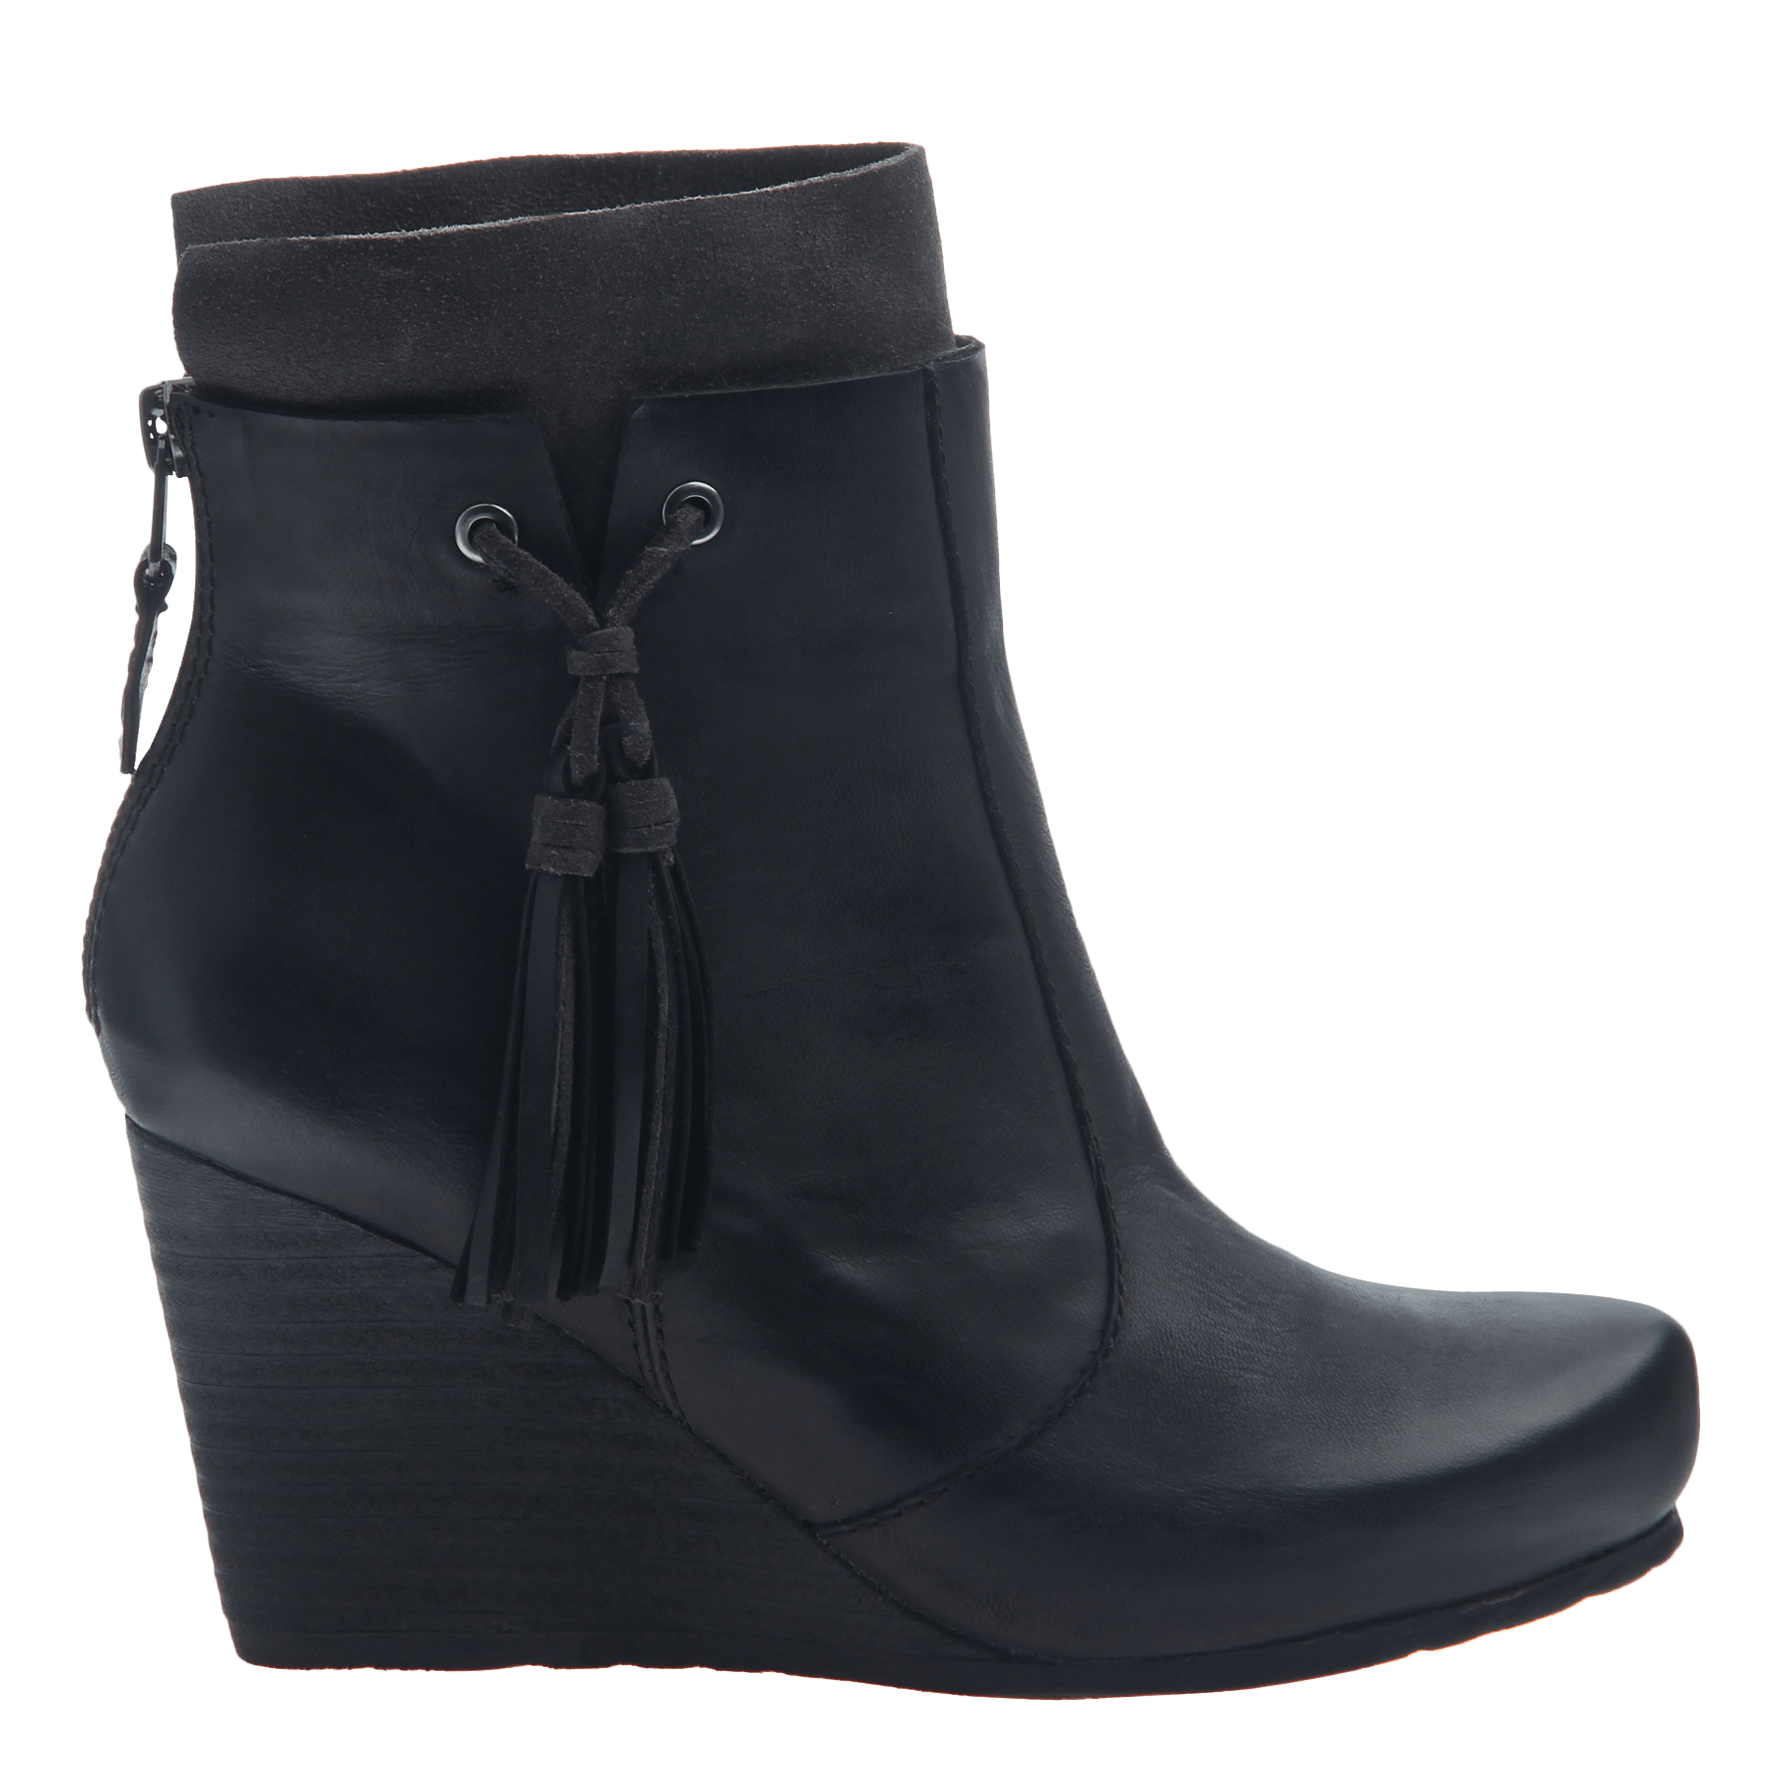 Women's wedge ankle bootie the vagary in black side view